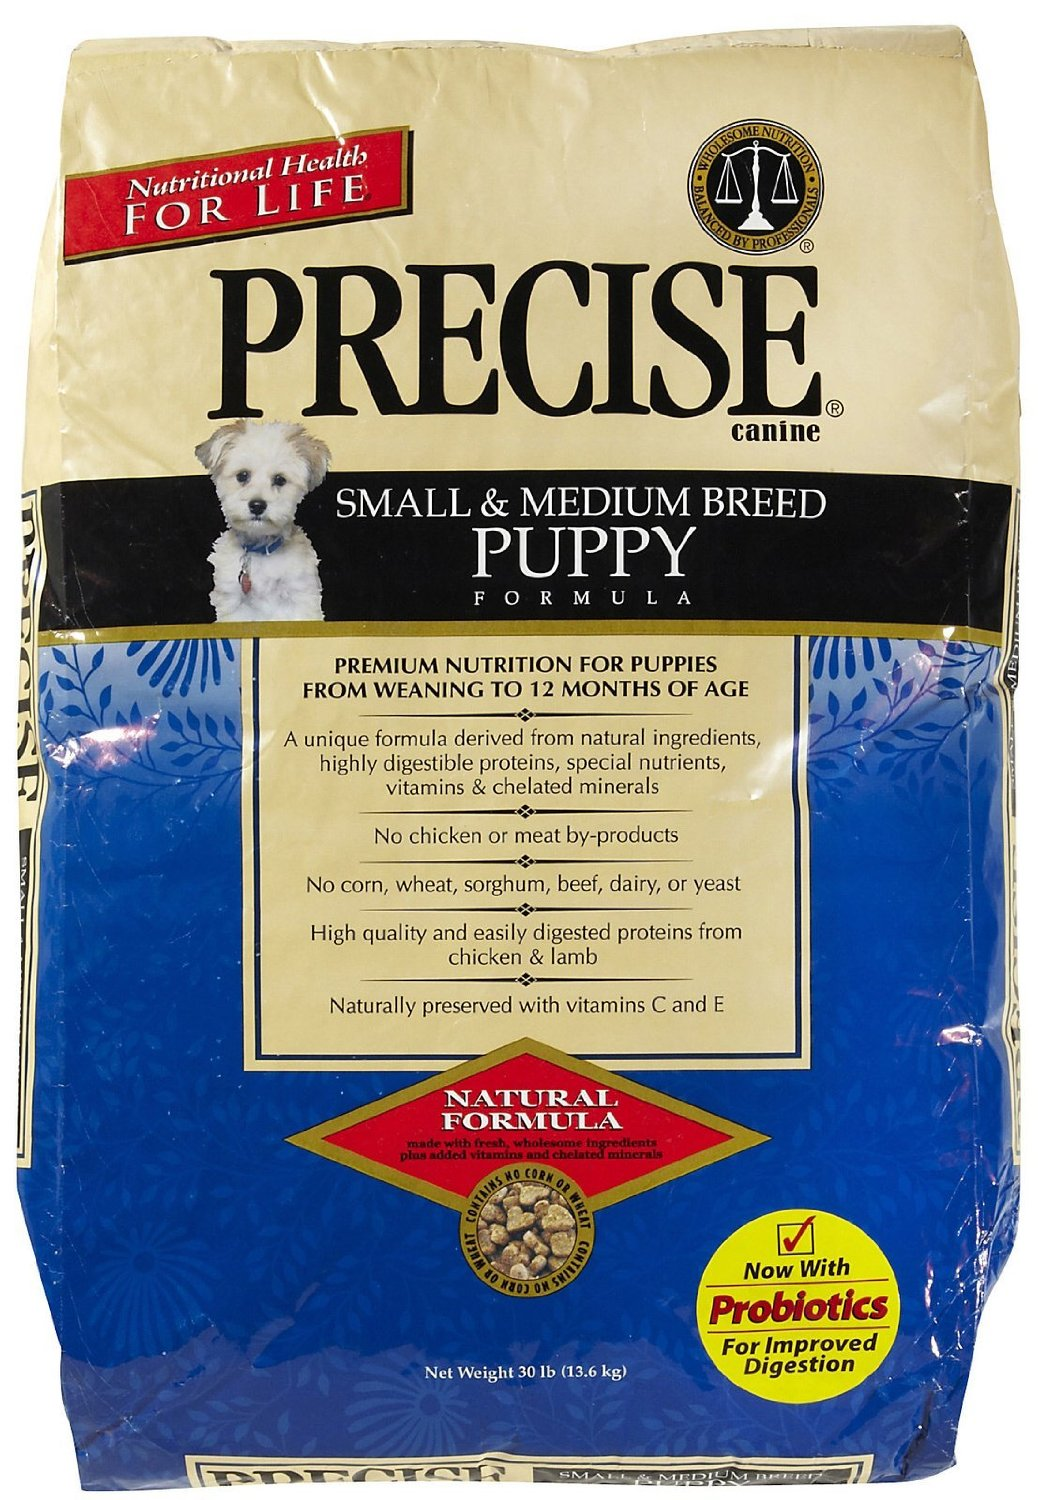 Precise Puppy Dog Food